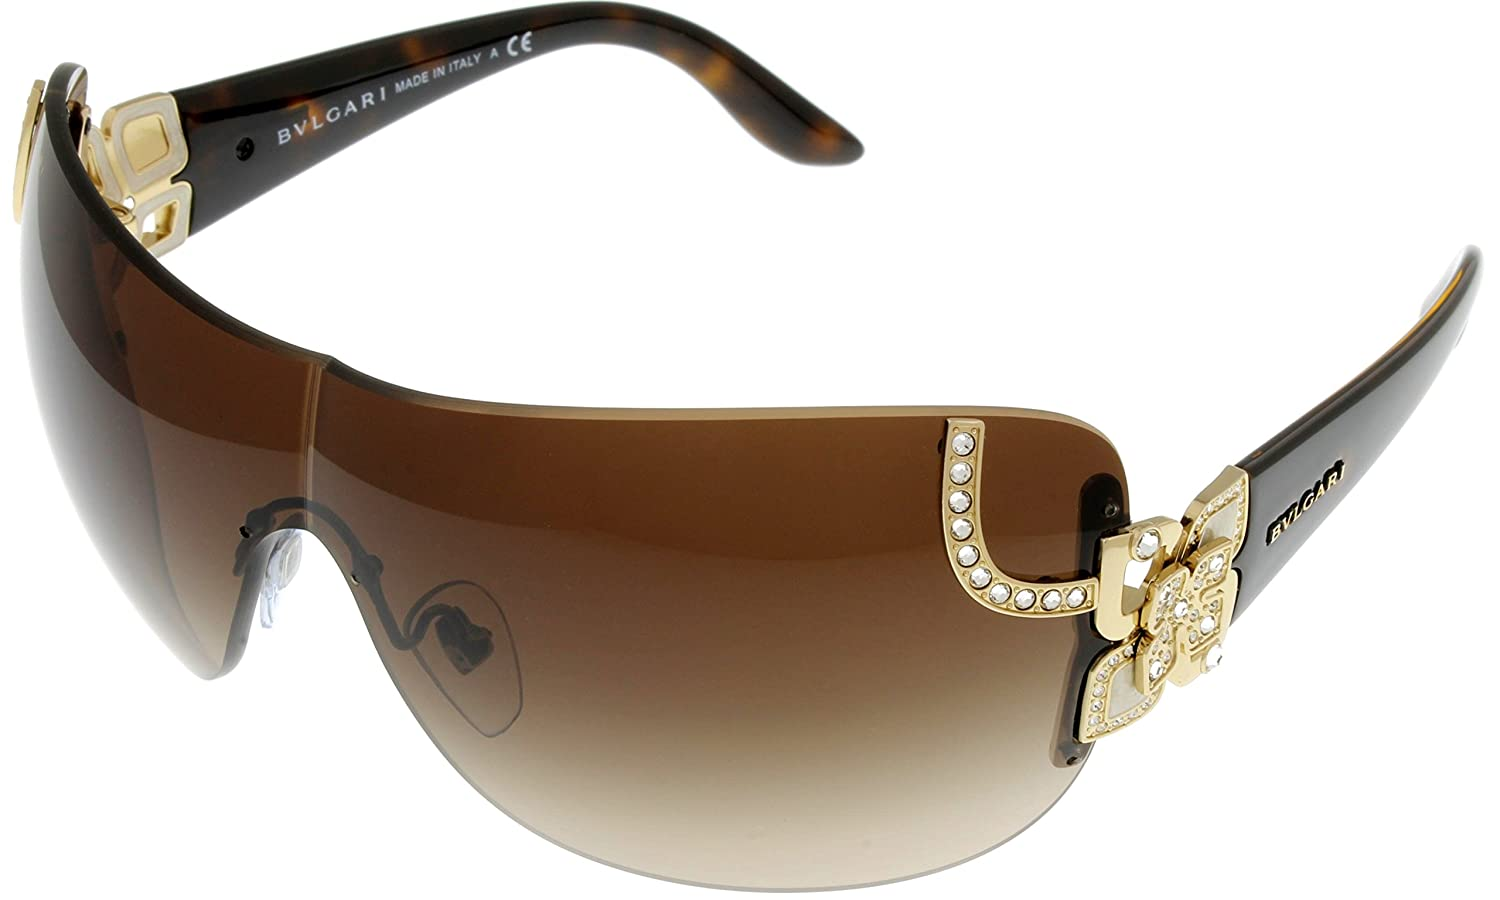 Bvlgari Sunglasses Rimless Women Brown Sheild BV6079B 278/13